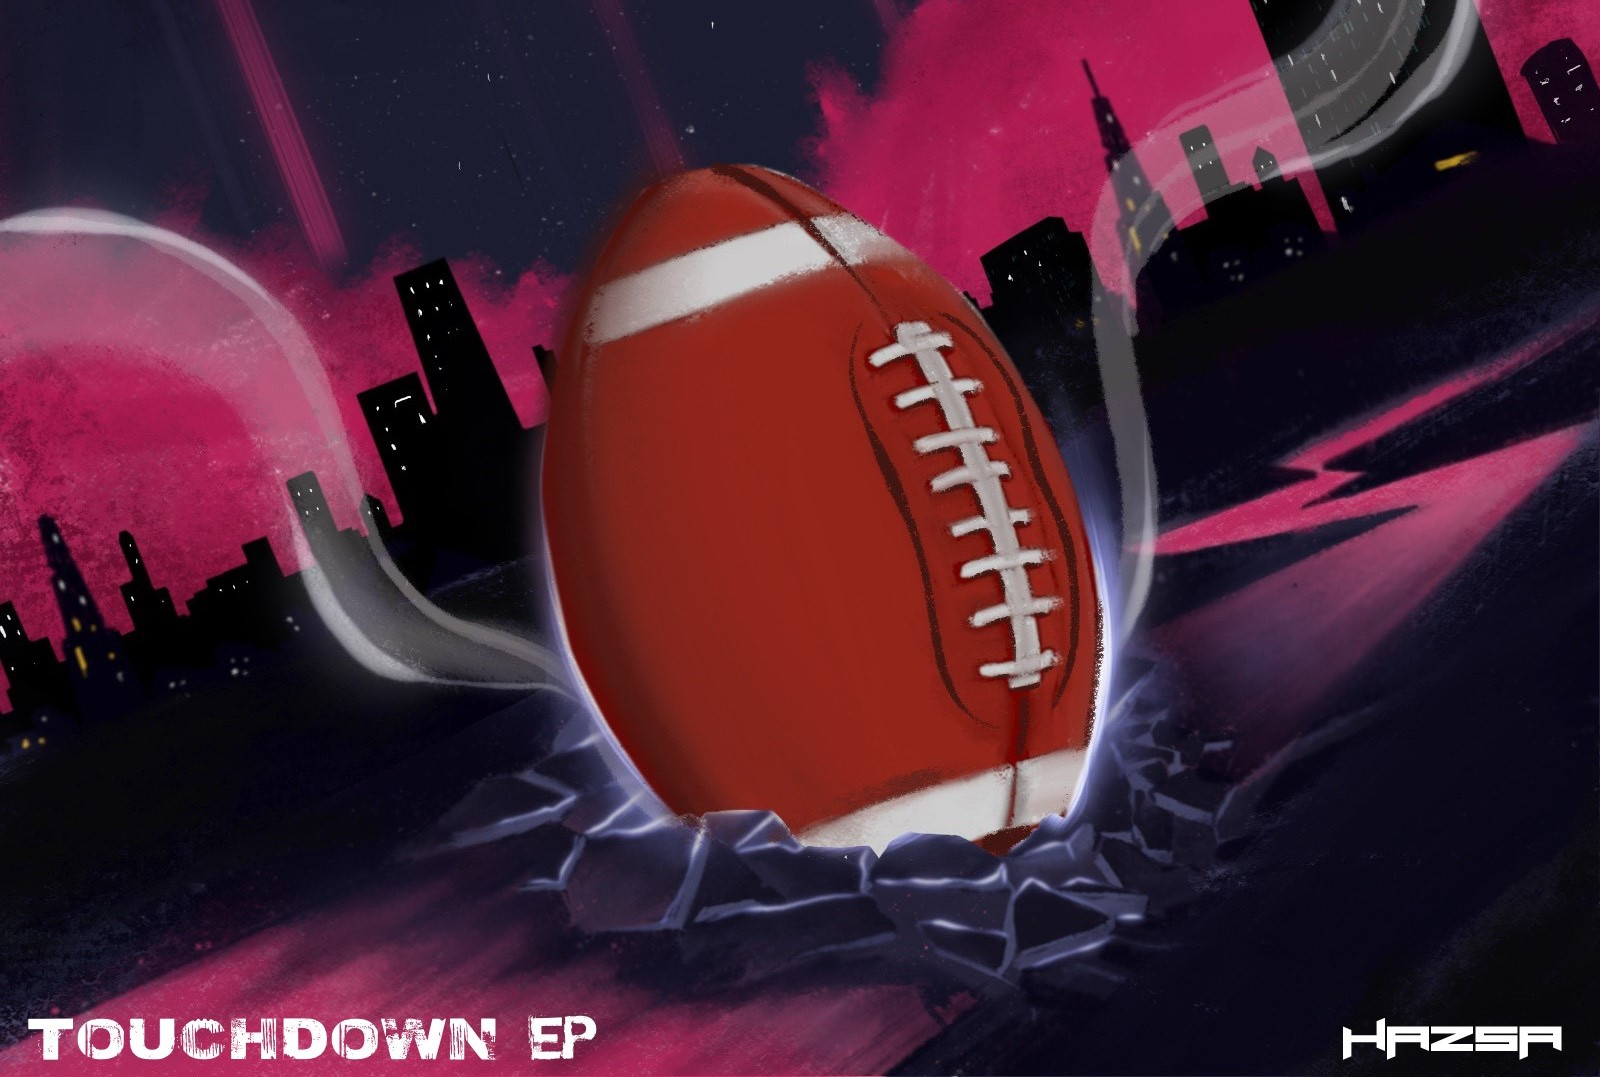 Upcoming: Hazsa - Touchdown EP